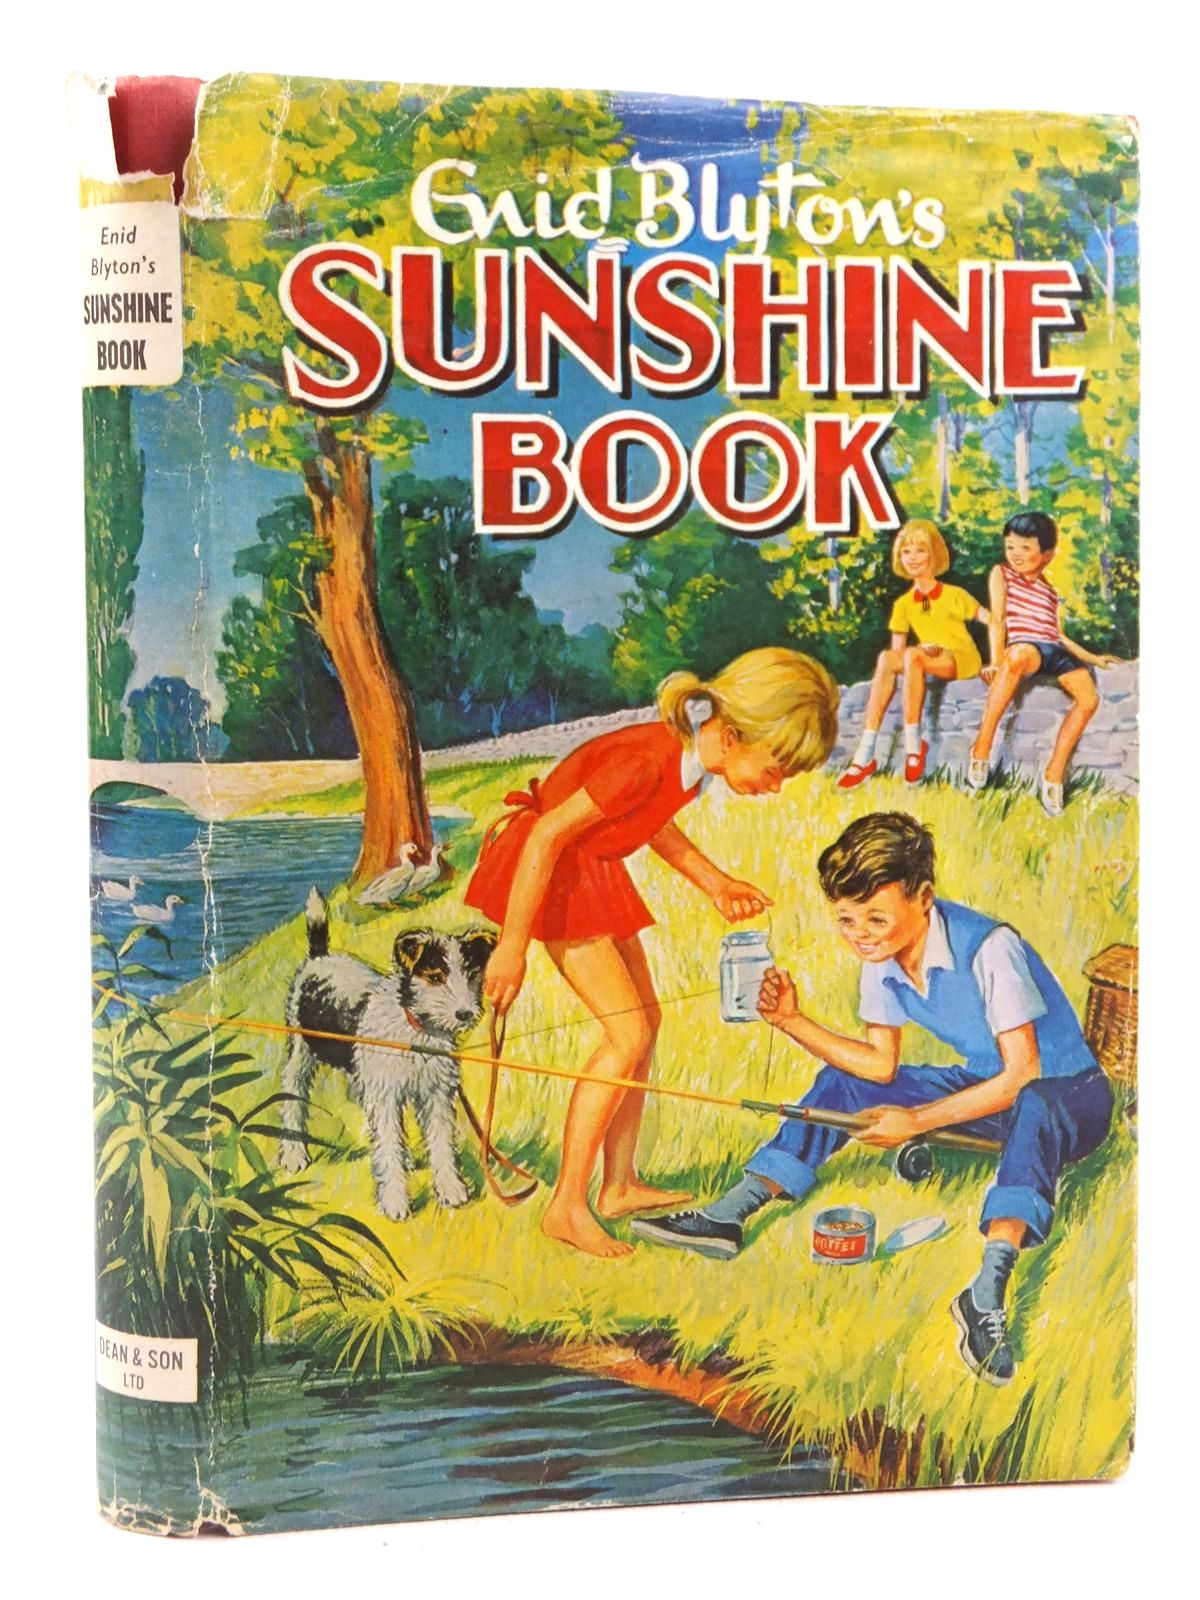 Photo of ENID BLYTON'S SUNSHINE BOOK written by Blyton, Enid published by Dean & Son Ltd. (STOCK CODE: 2122210)  for sale by Stella & Rose's Books